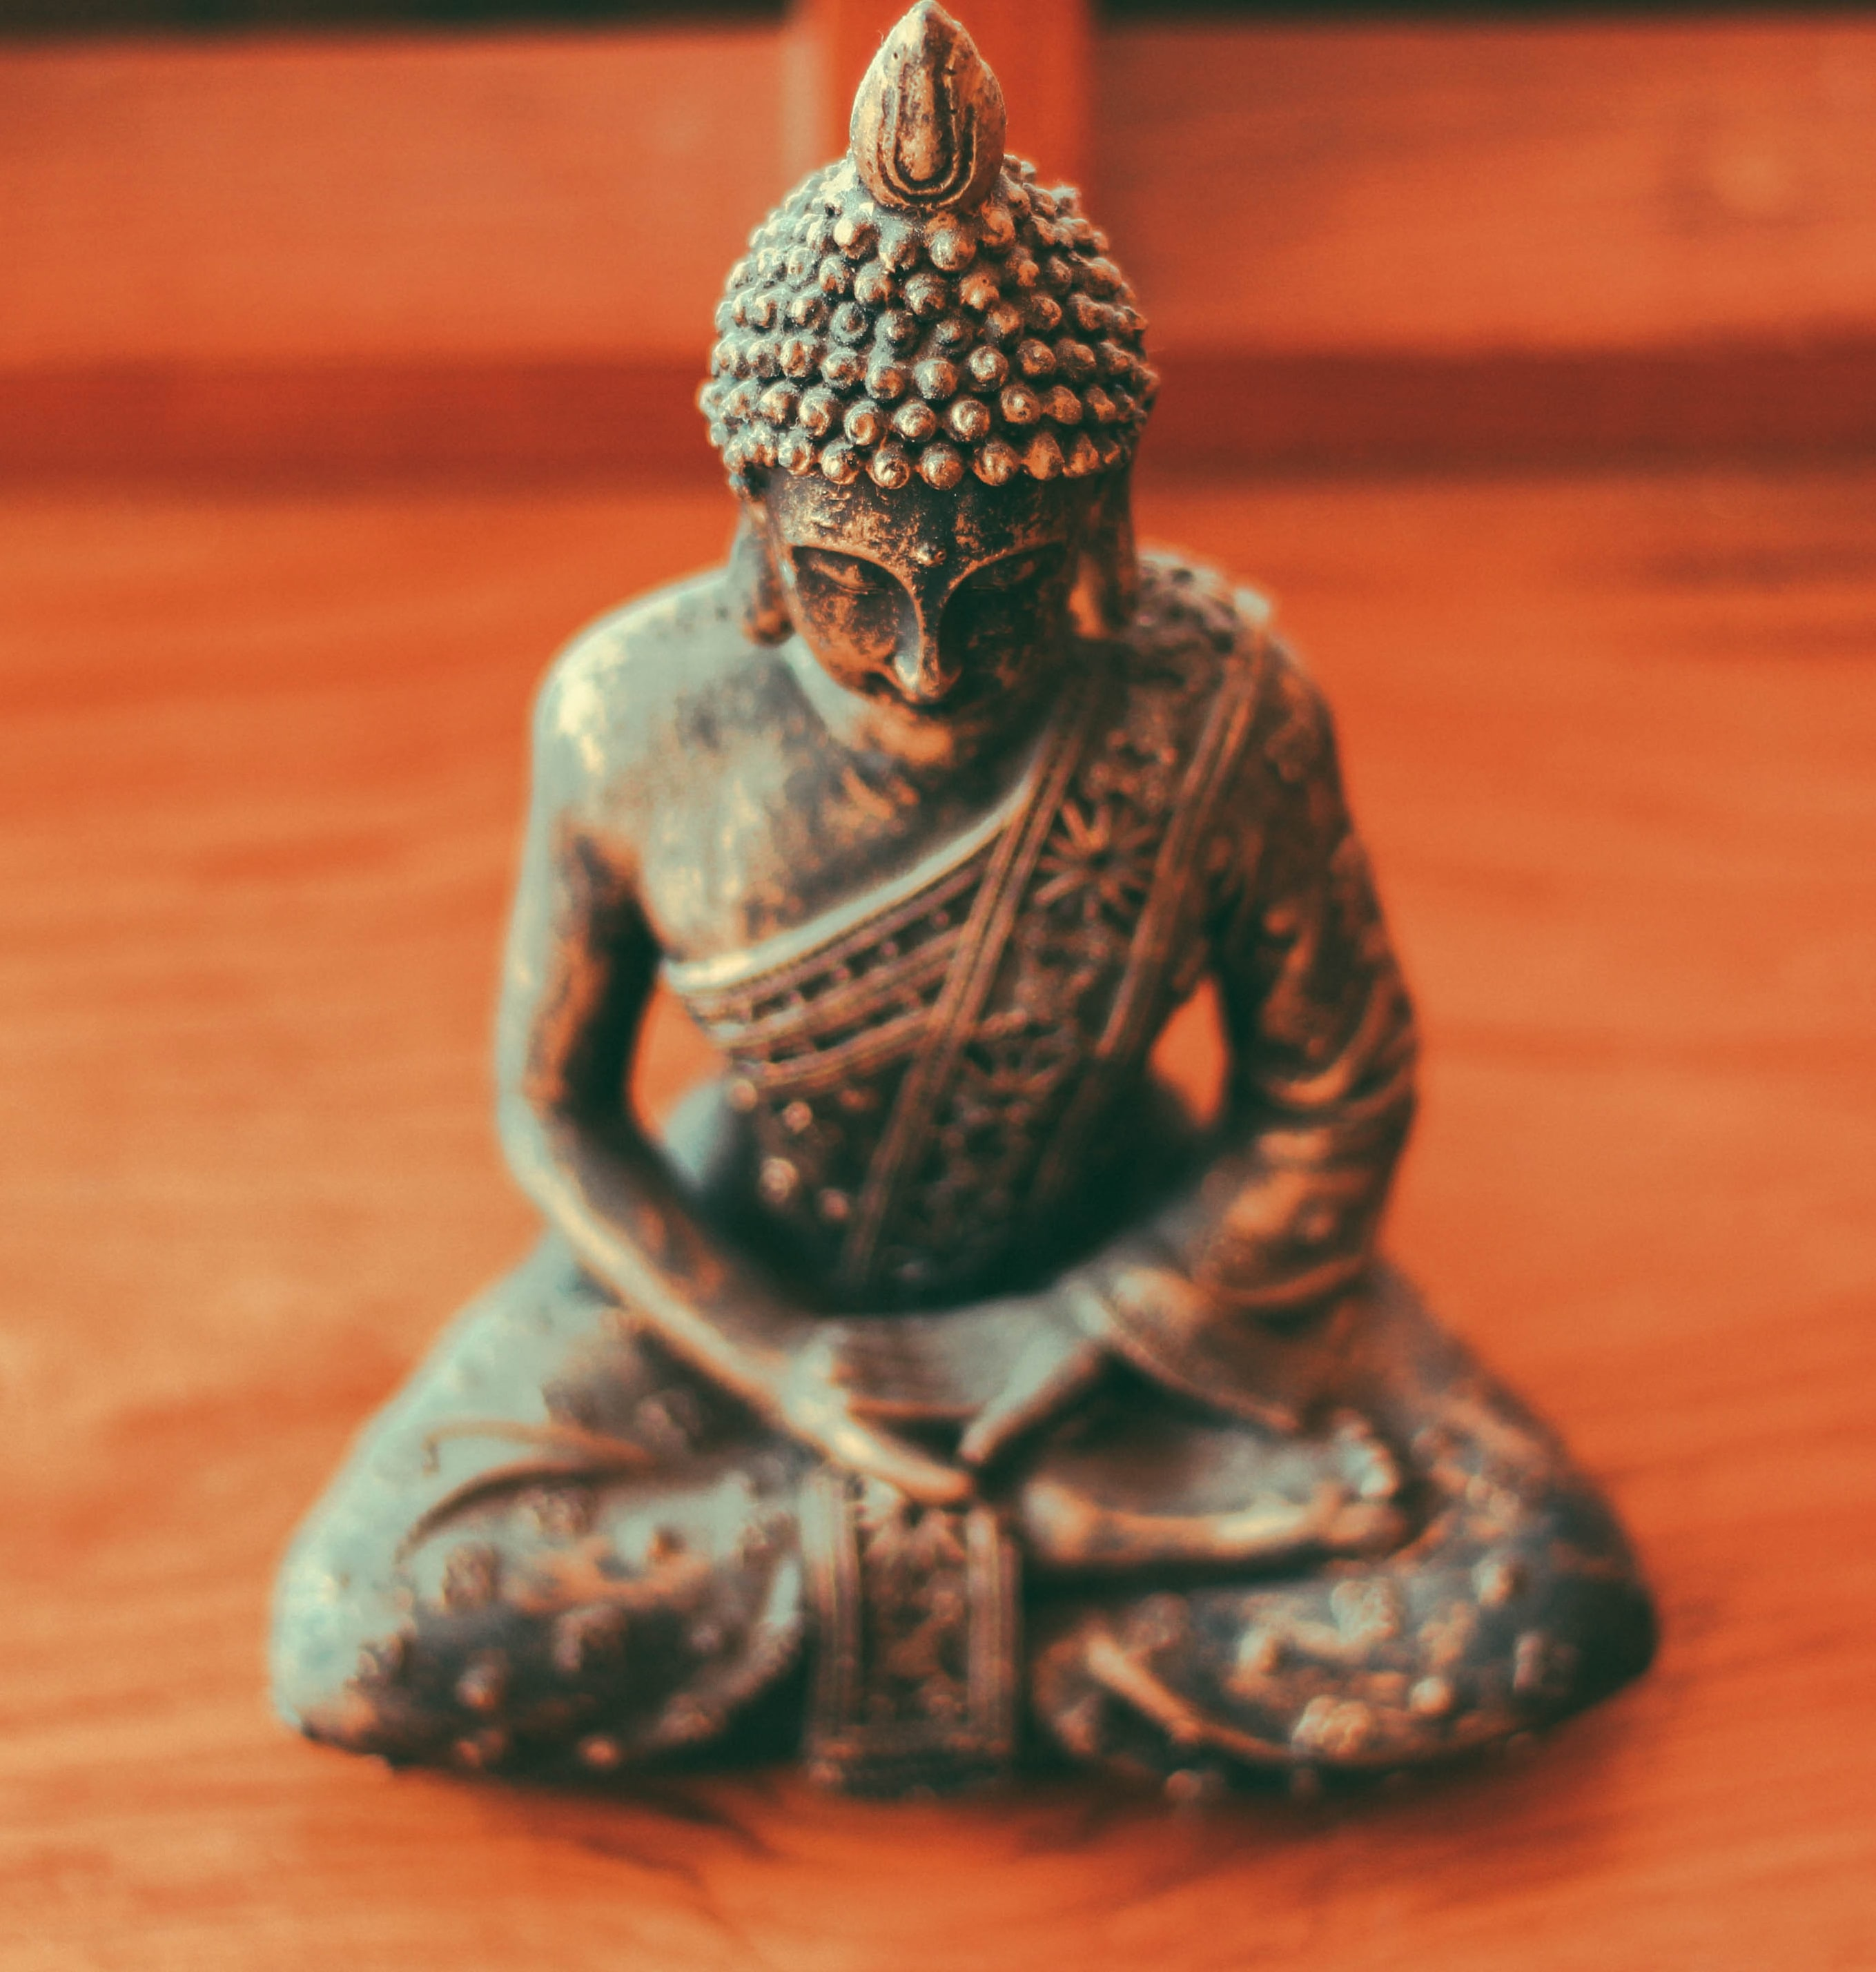 Gautama Buddha figurine on brown wooden surface